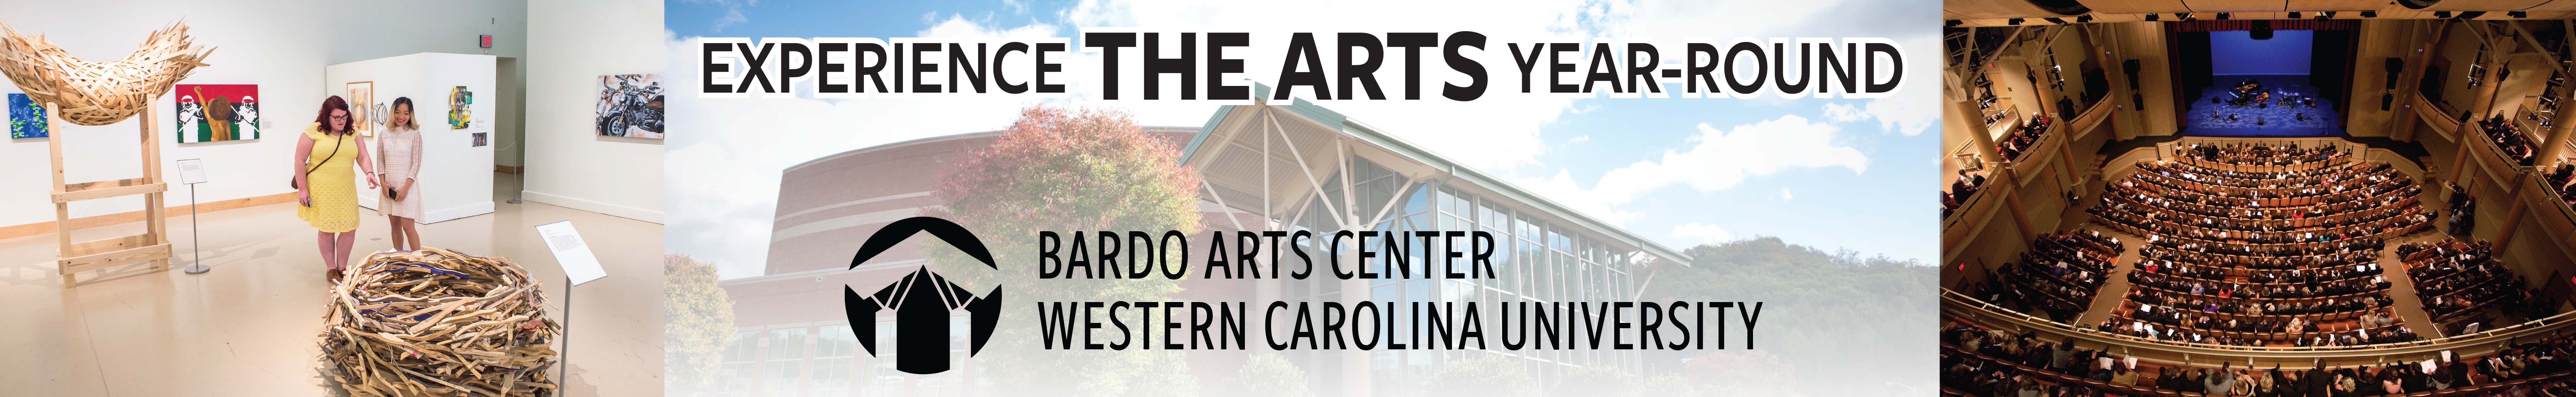 Bardo Arts Center